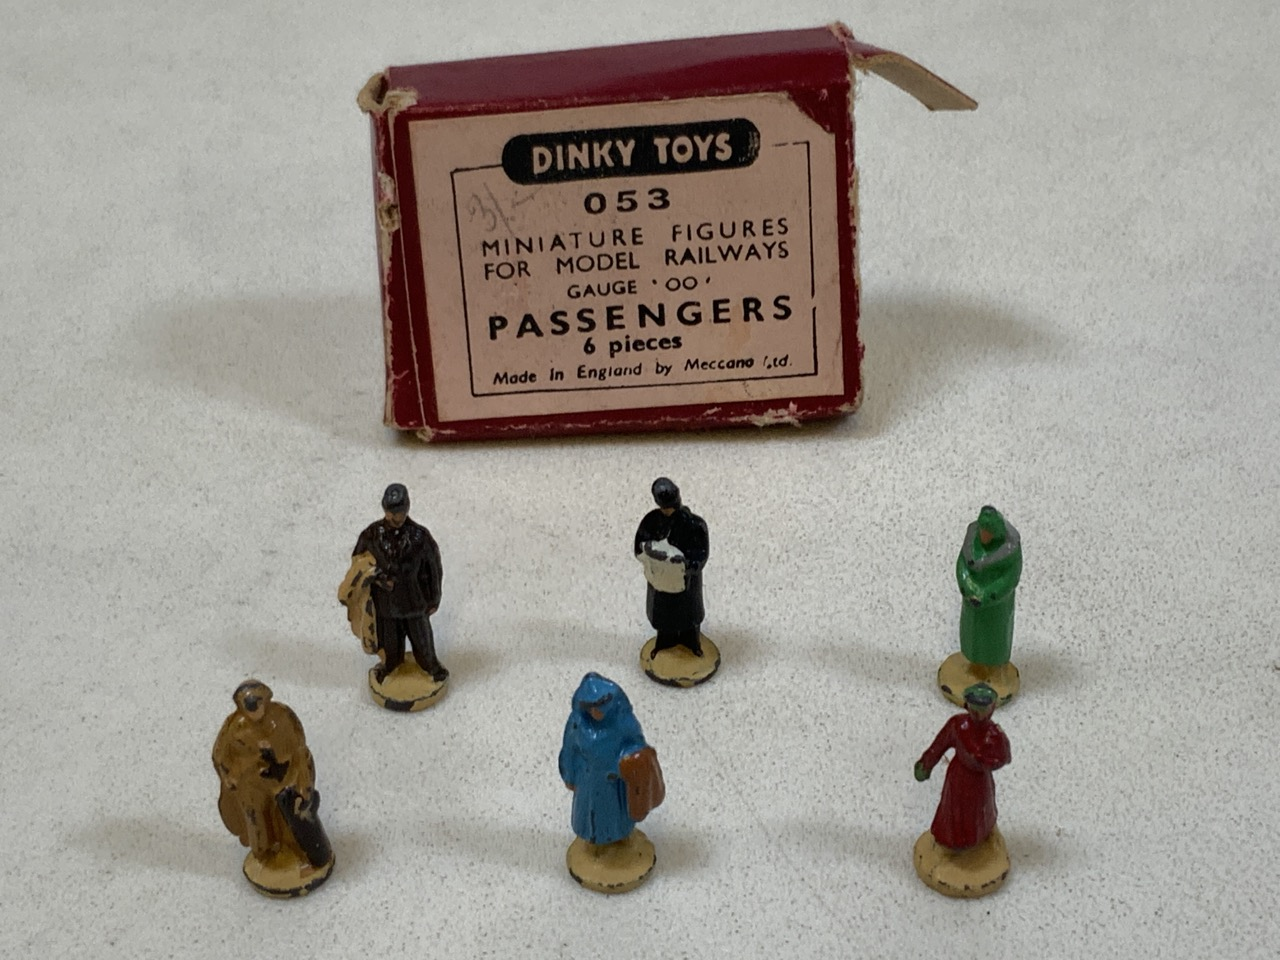 Dinky toy miniature passengers for gauge 00 railway in original box - six pieces. Height approx 2cm